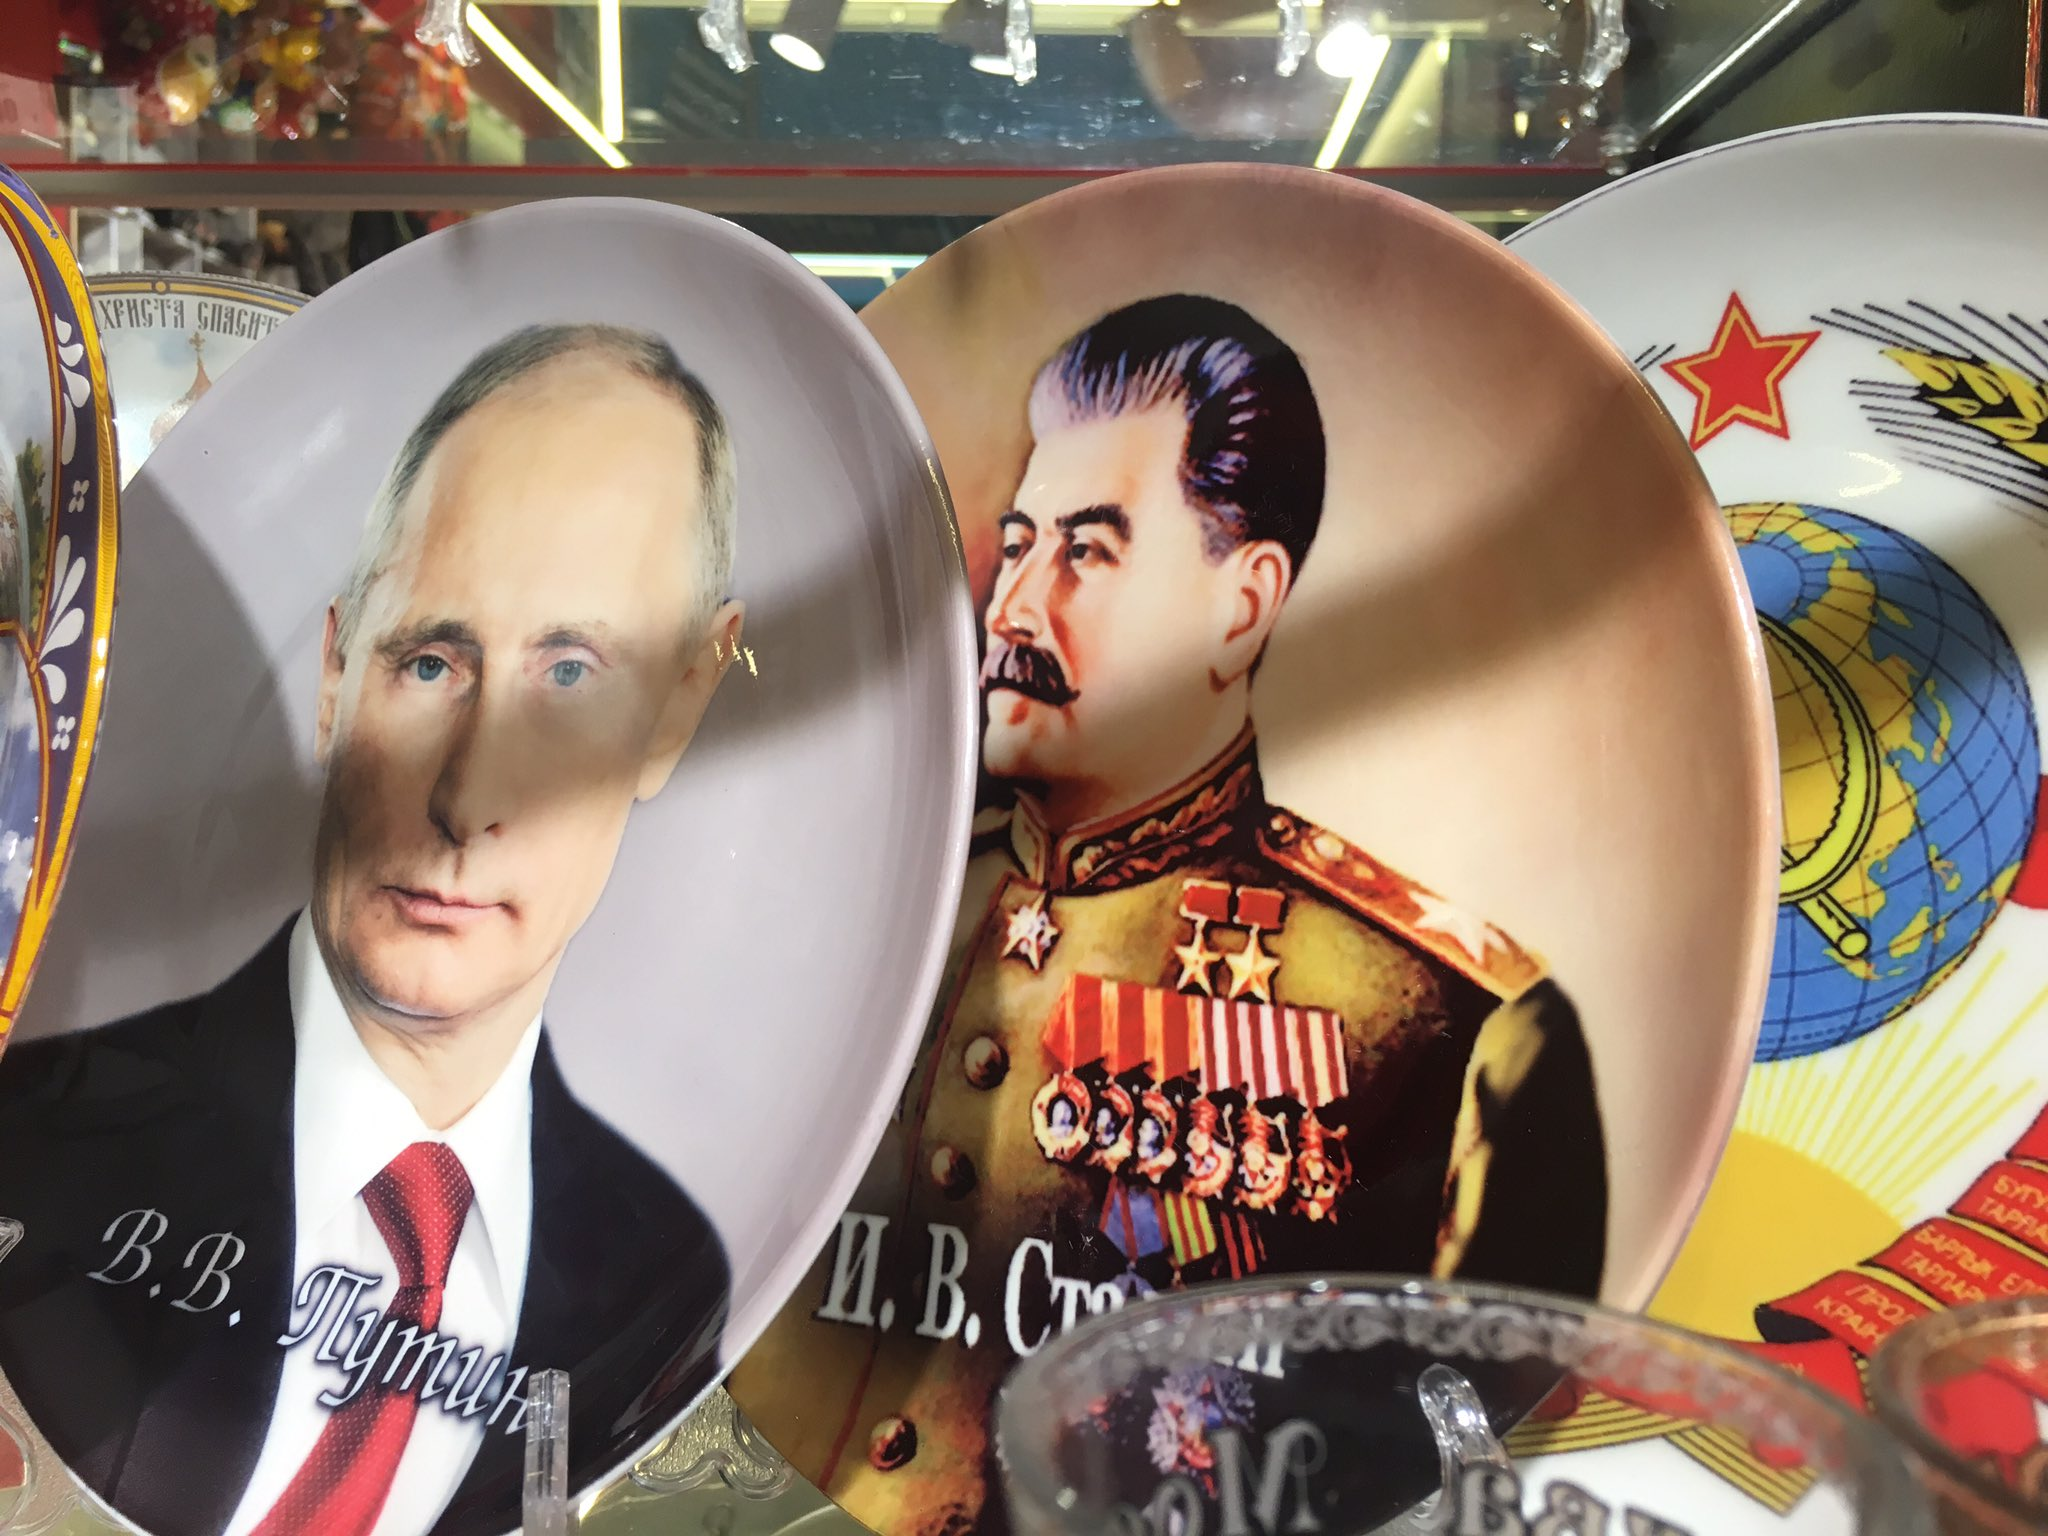 Russia has a lot on its plate right now. Putin & Stalin crockery on sale at a Moscow train station. https://t.co/45jagi1FlF